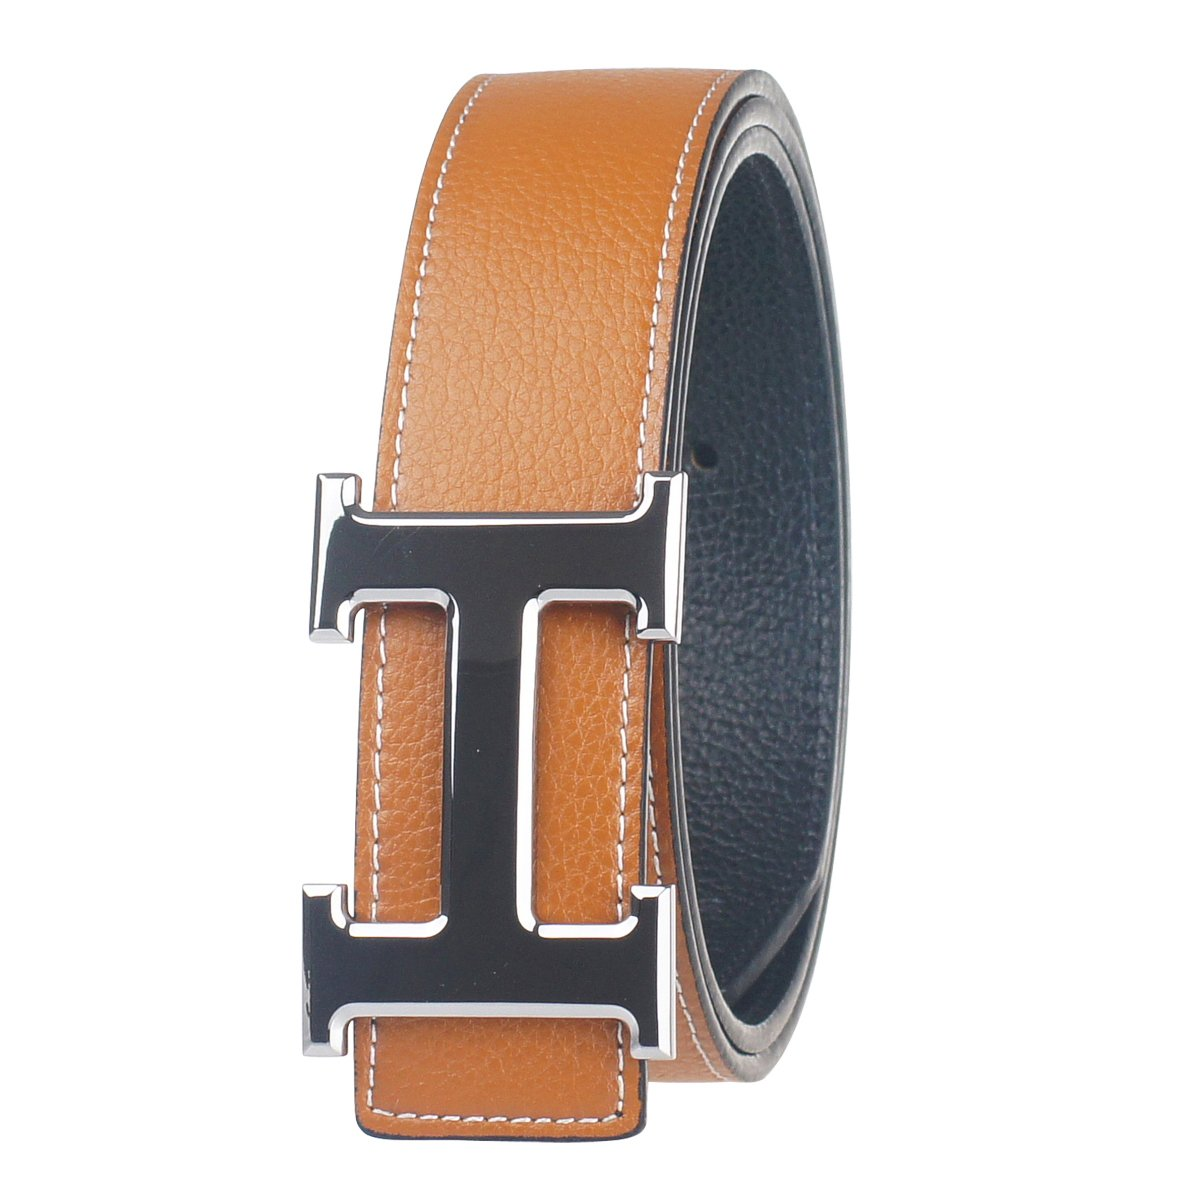 New Designer H Buckle Belt, High Quality Luxury Men's Leather Waist Belts (125cm, Coffee+Gold)